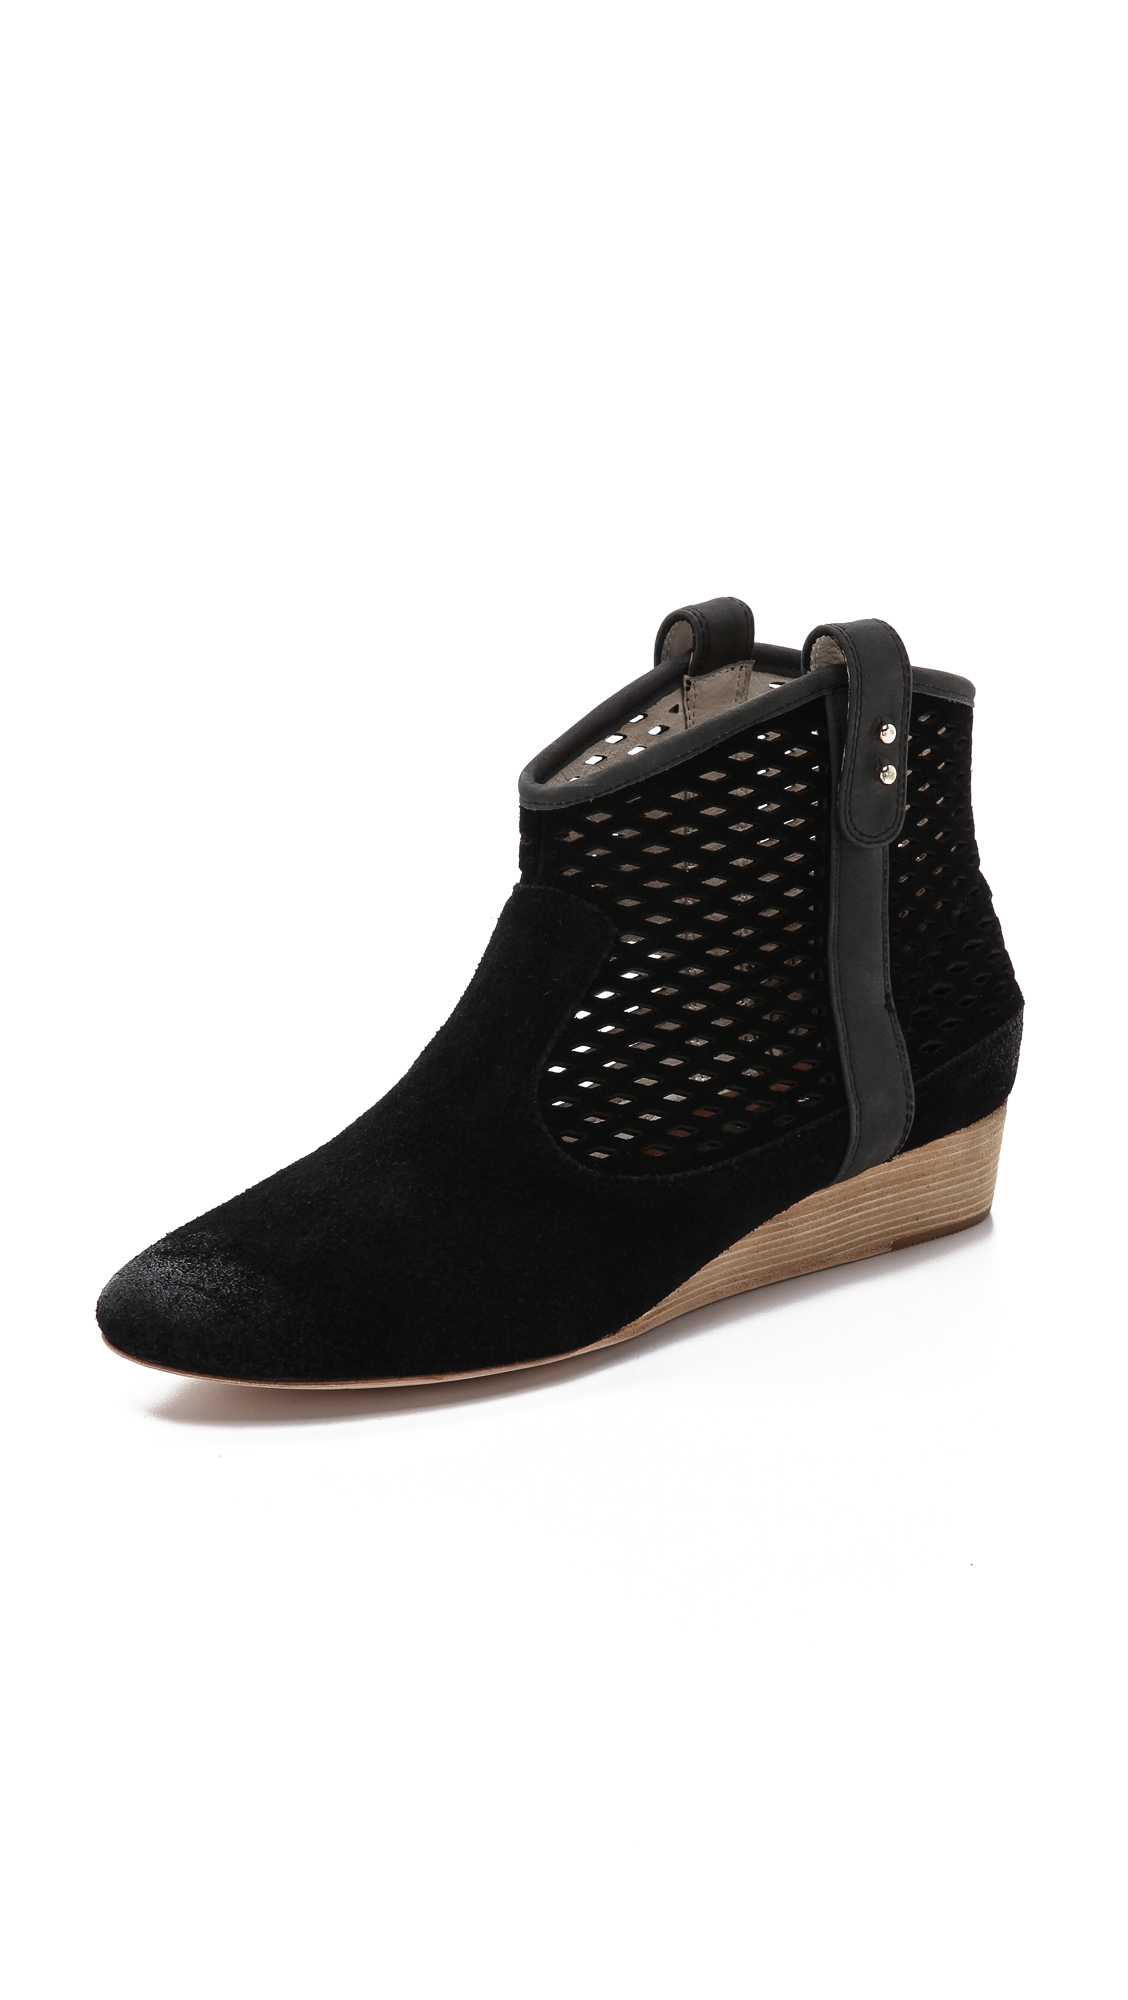 Black Casual Wedge Shoes